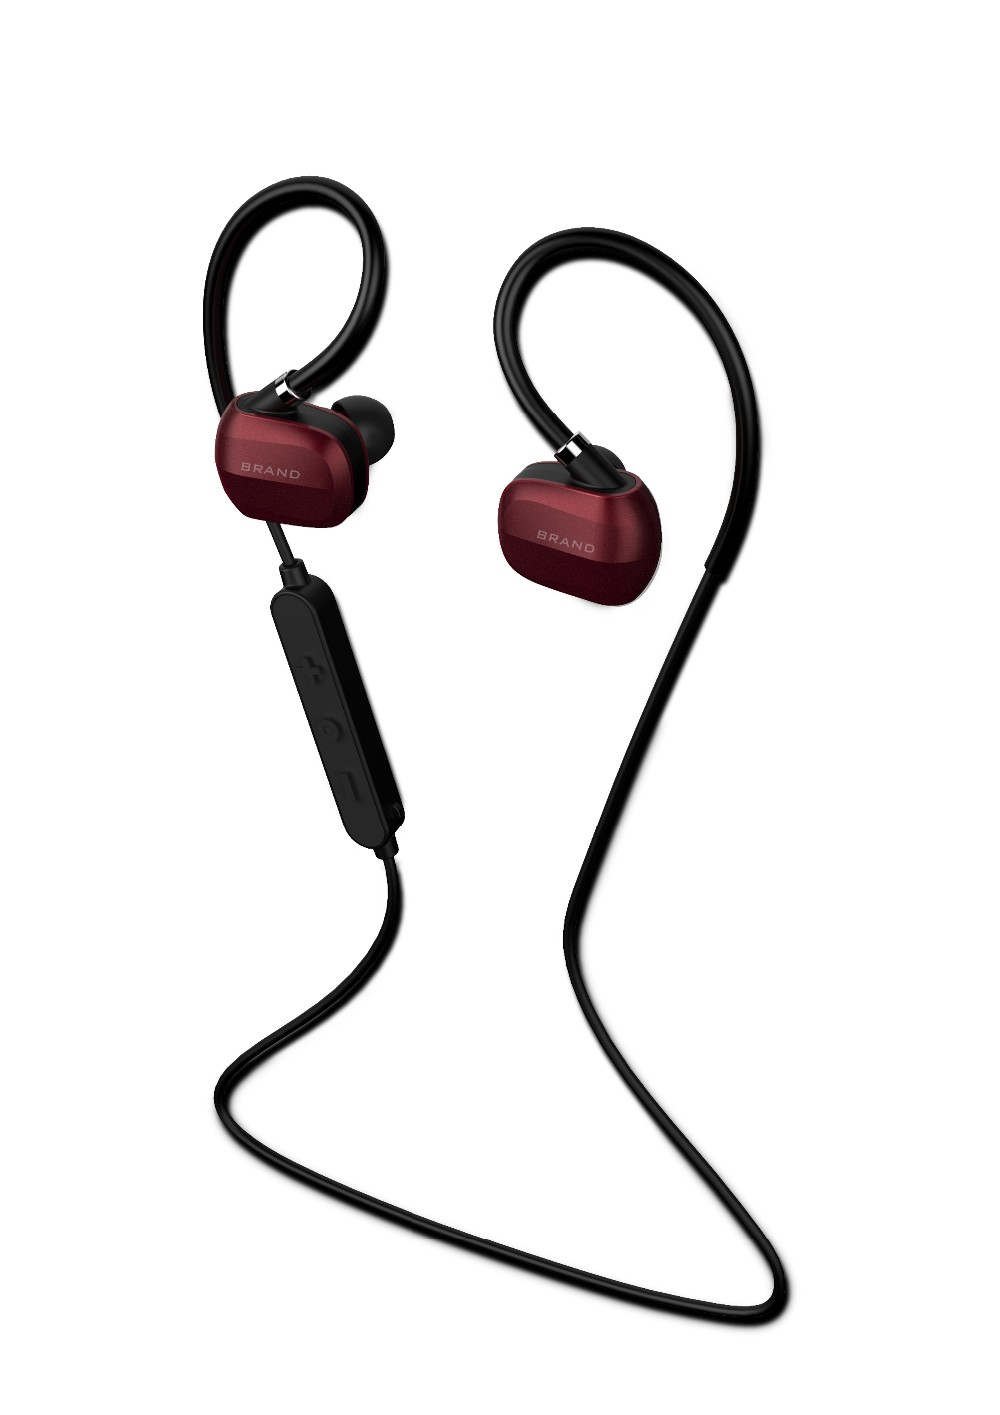 2016 Top Selling wireless bluetooth headset bluetooth headphone for LG Tone